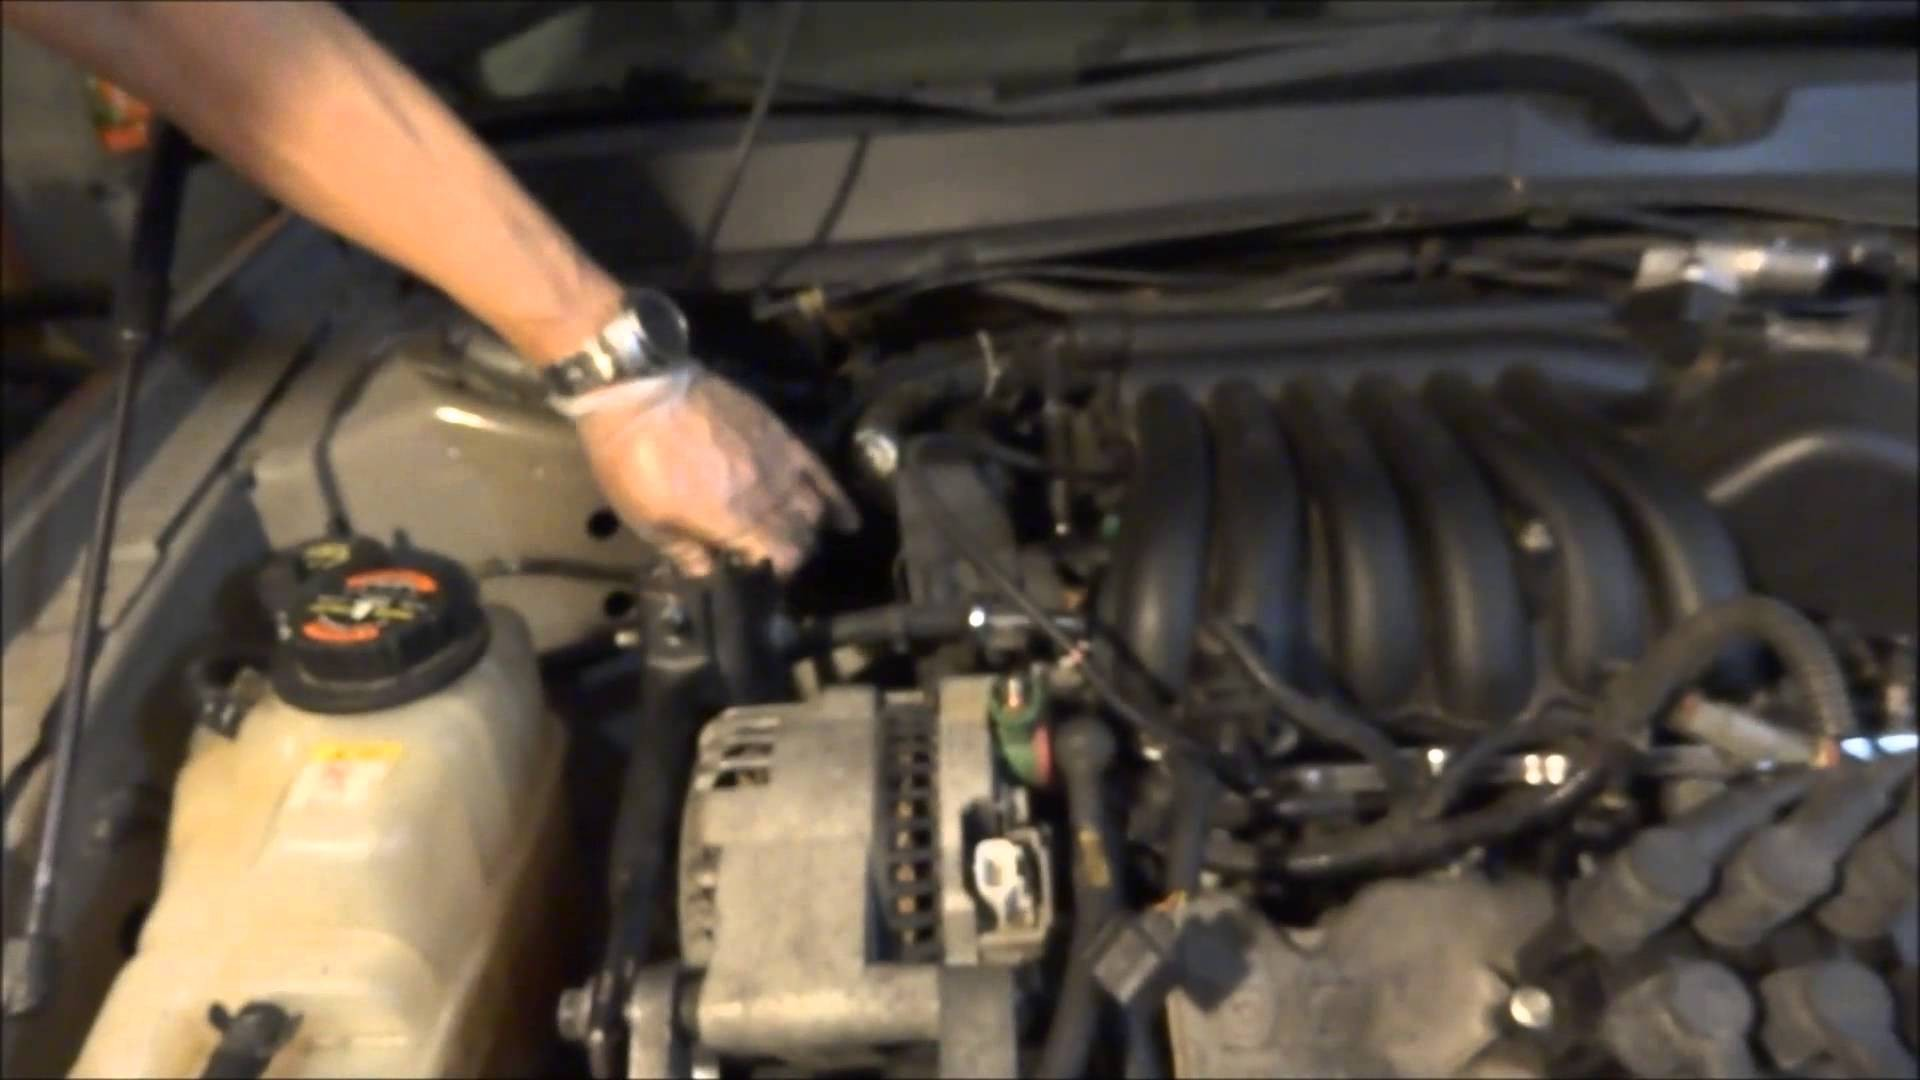 2000 Mercury Sable Engine Diagram Removing Alternator From 2007 Ford Taurus